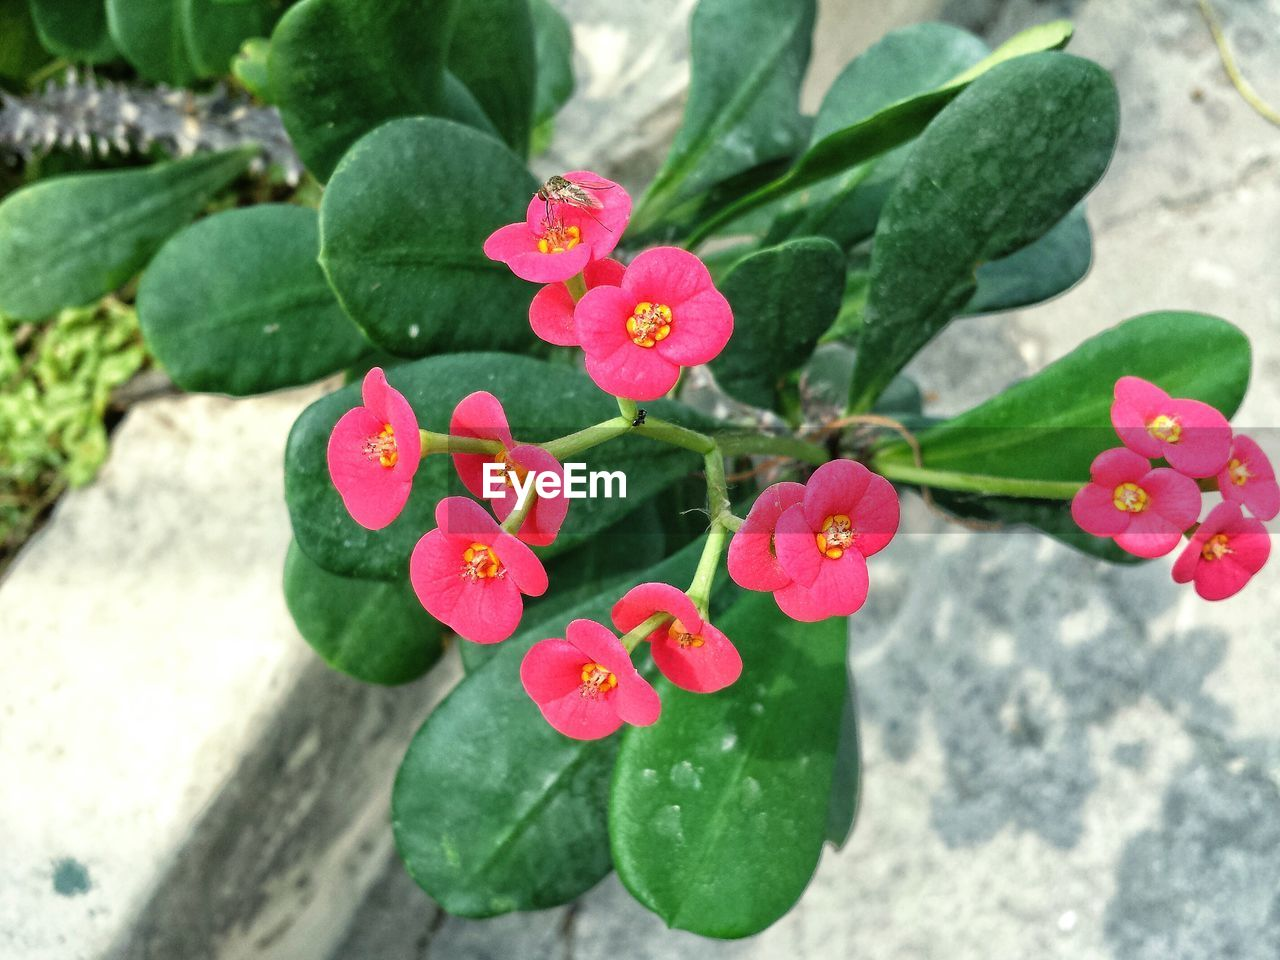 growth, flower, leaf, plant, petal, nature, beauty in nature, high angle view, green color, day, fragility, flower head, freshness, outdoors, pink color, focus on foreground, blooming, no people, close-up, periwinkle